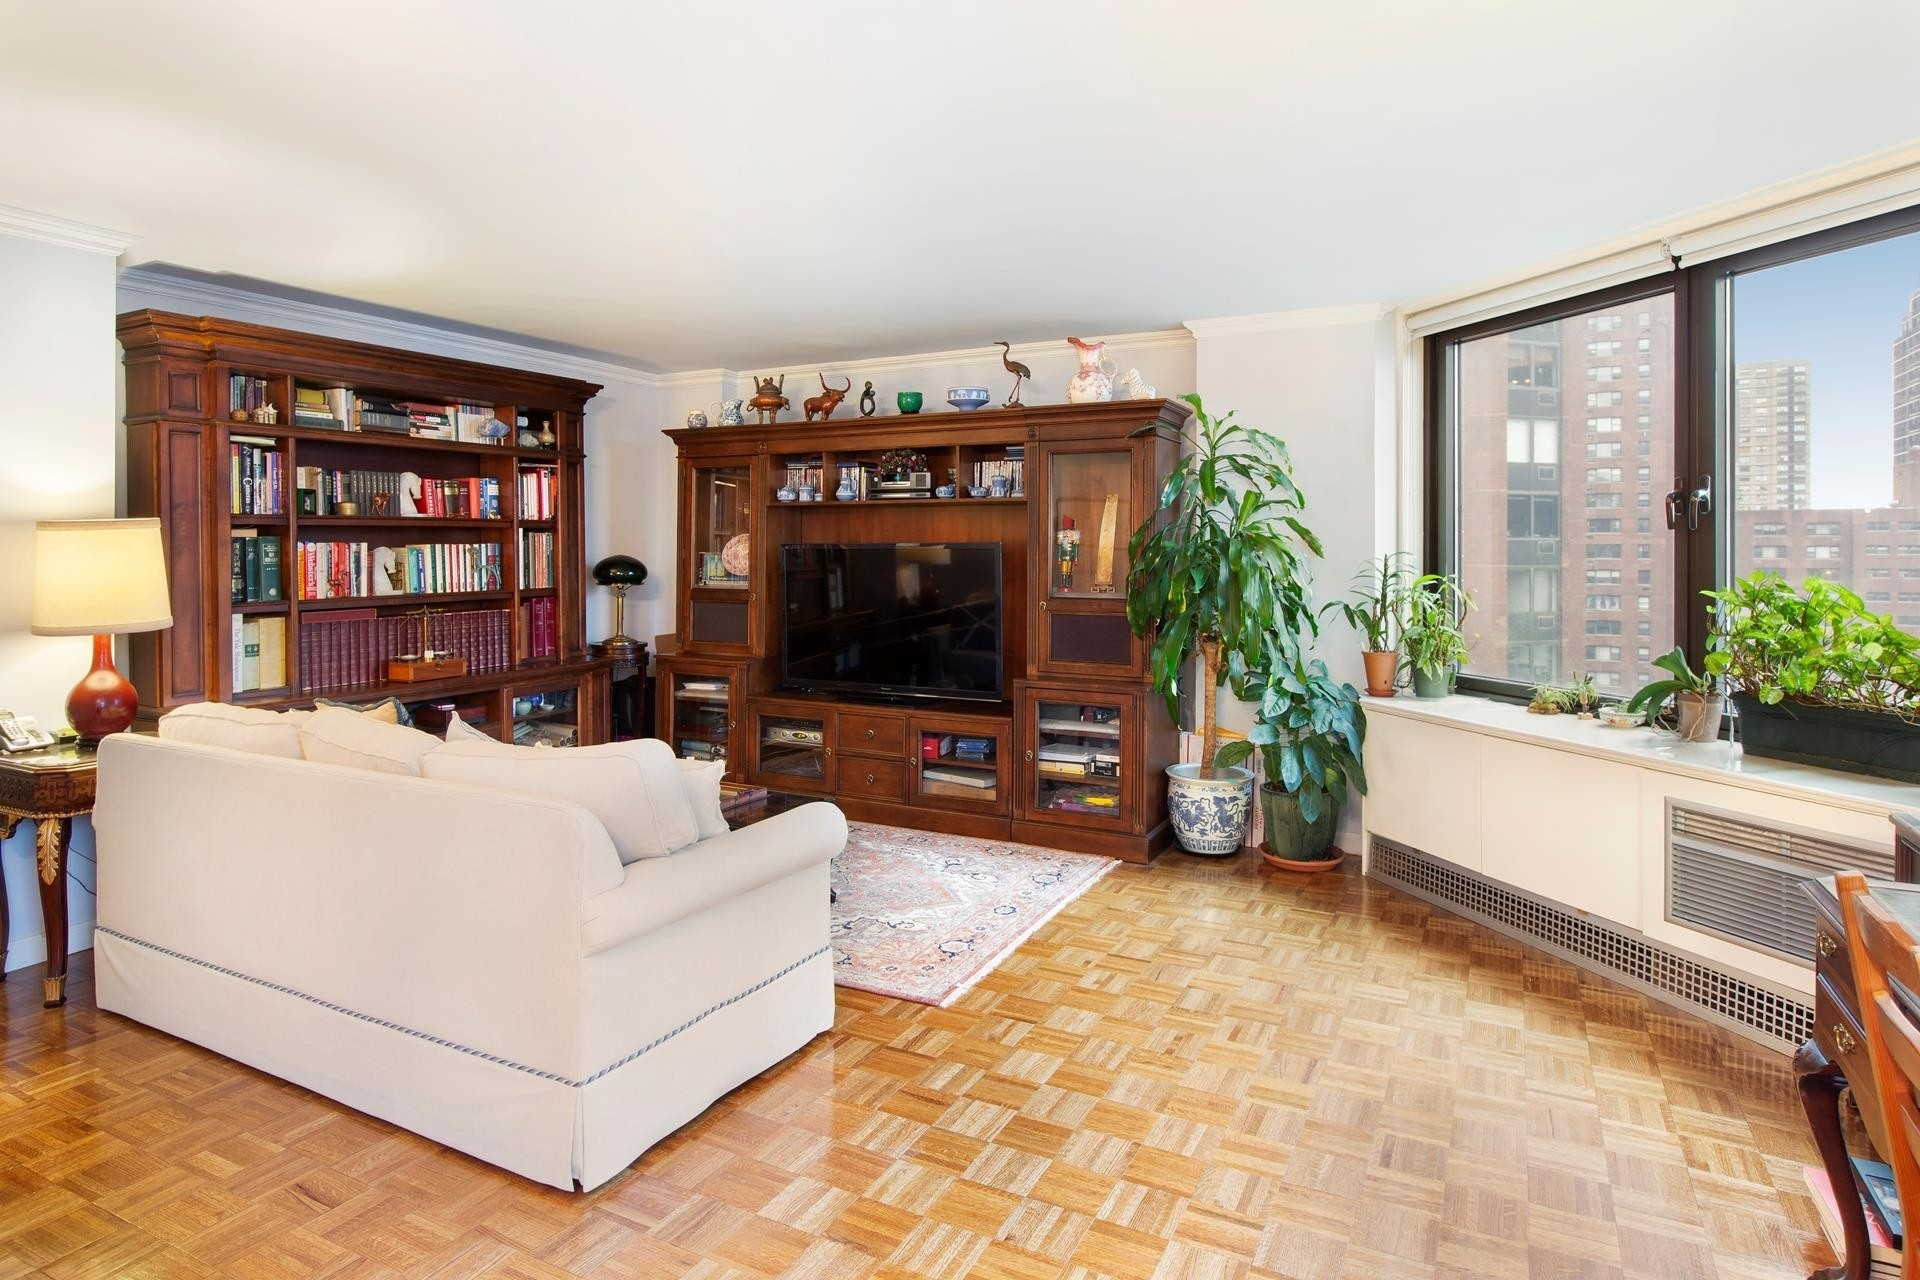 Condominium for Sale at Ruppert Yorkville Towers, 1619 Third Avenue, 11A Yorkville, New York, NY 10128